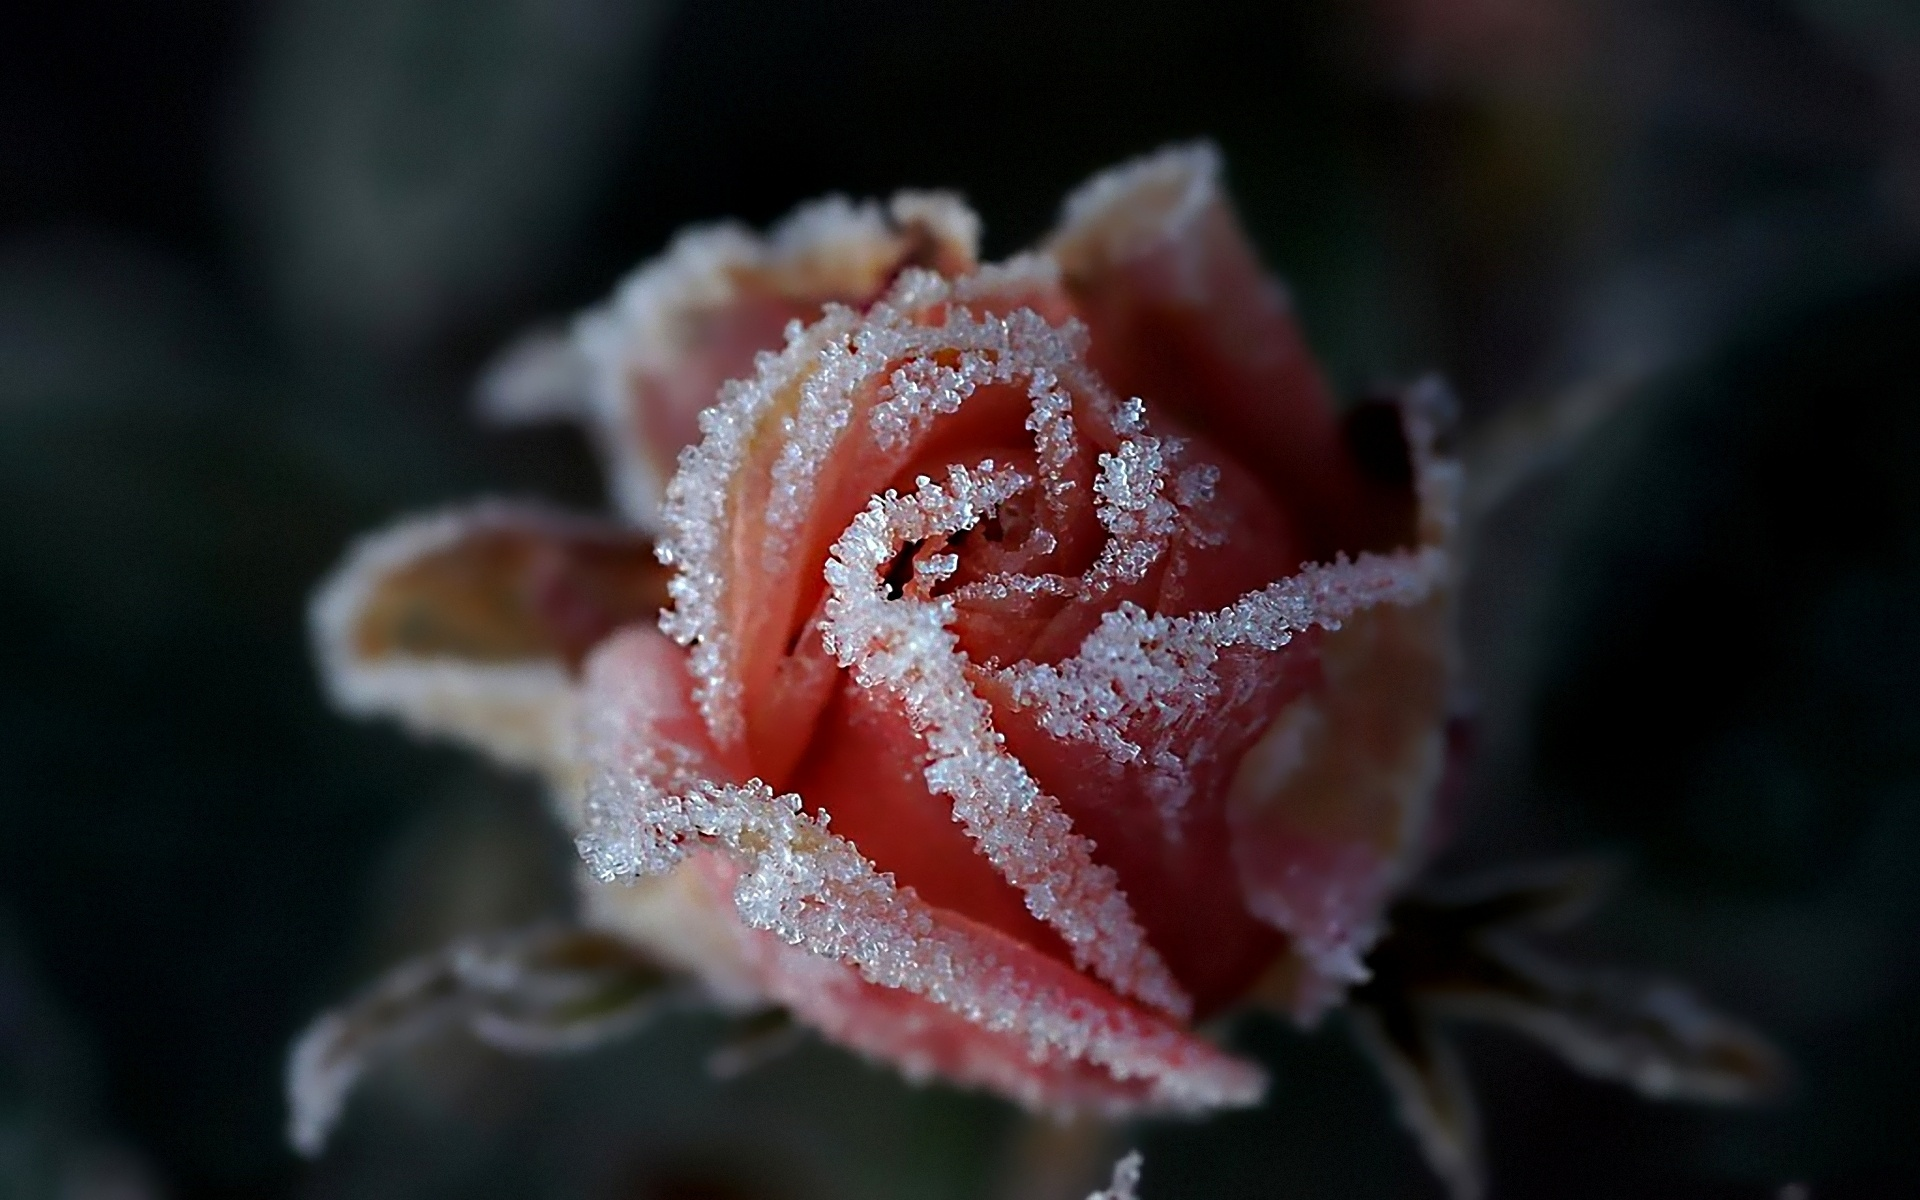 Snow rose flower wallpapers 1920x1200 556602 - Rose in snow wallpaper ...